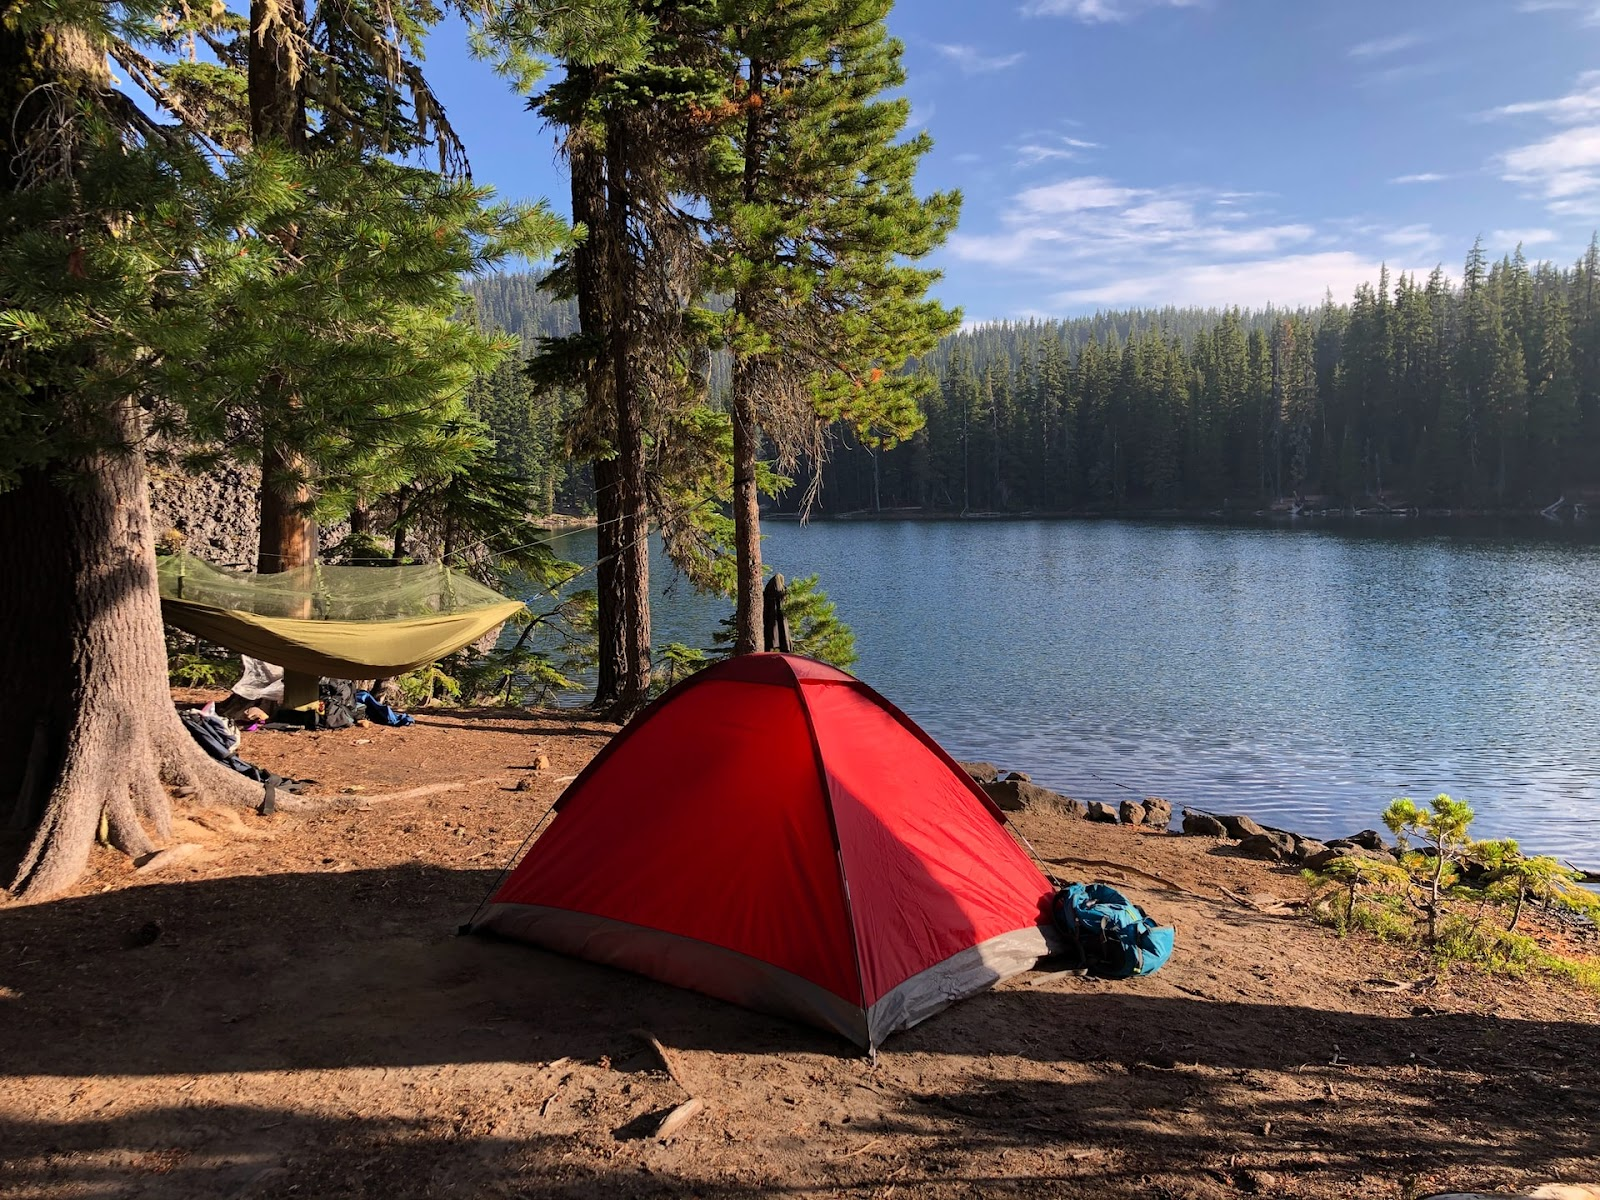 Wild Camping 101: Principles and Getting Prepared 5